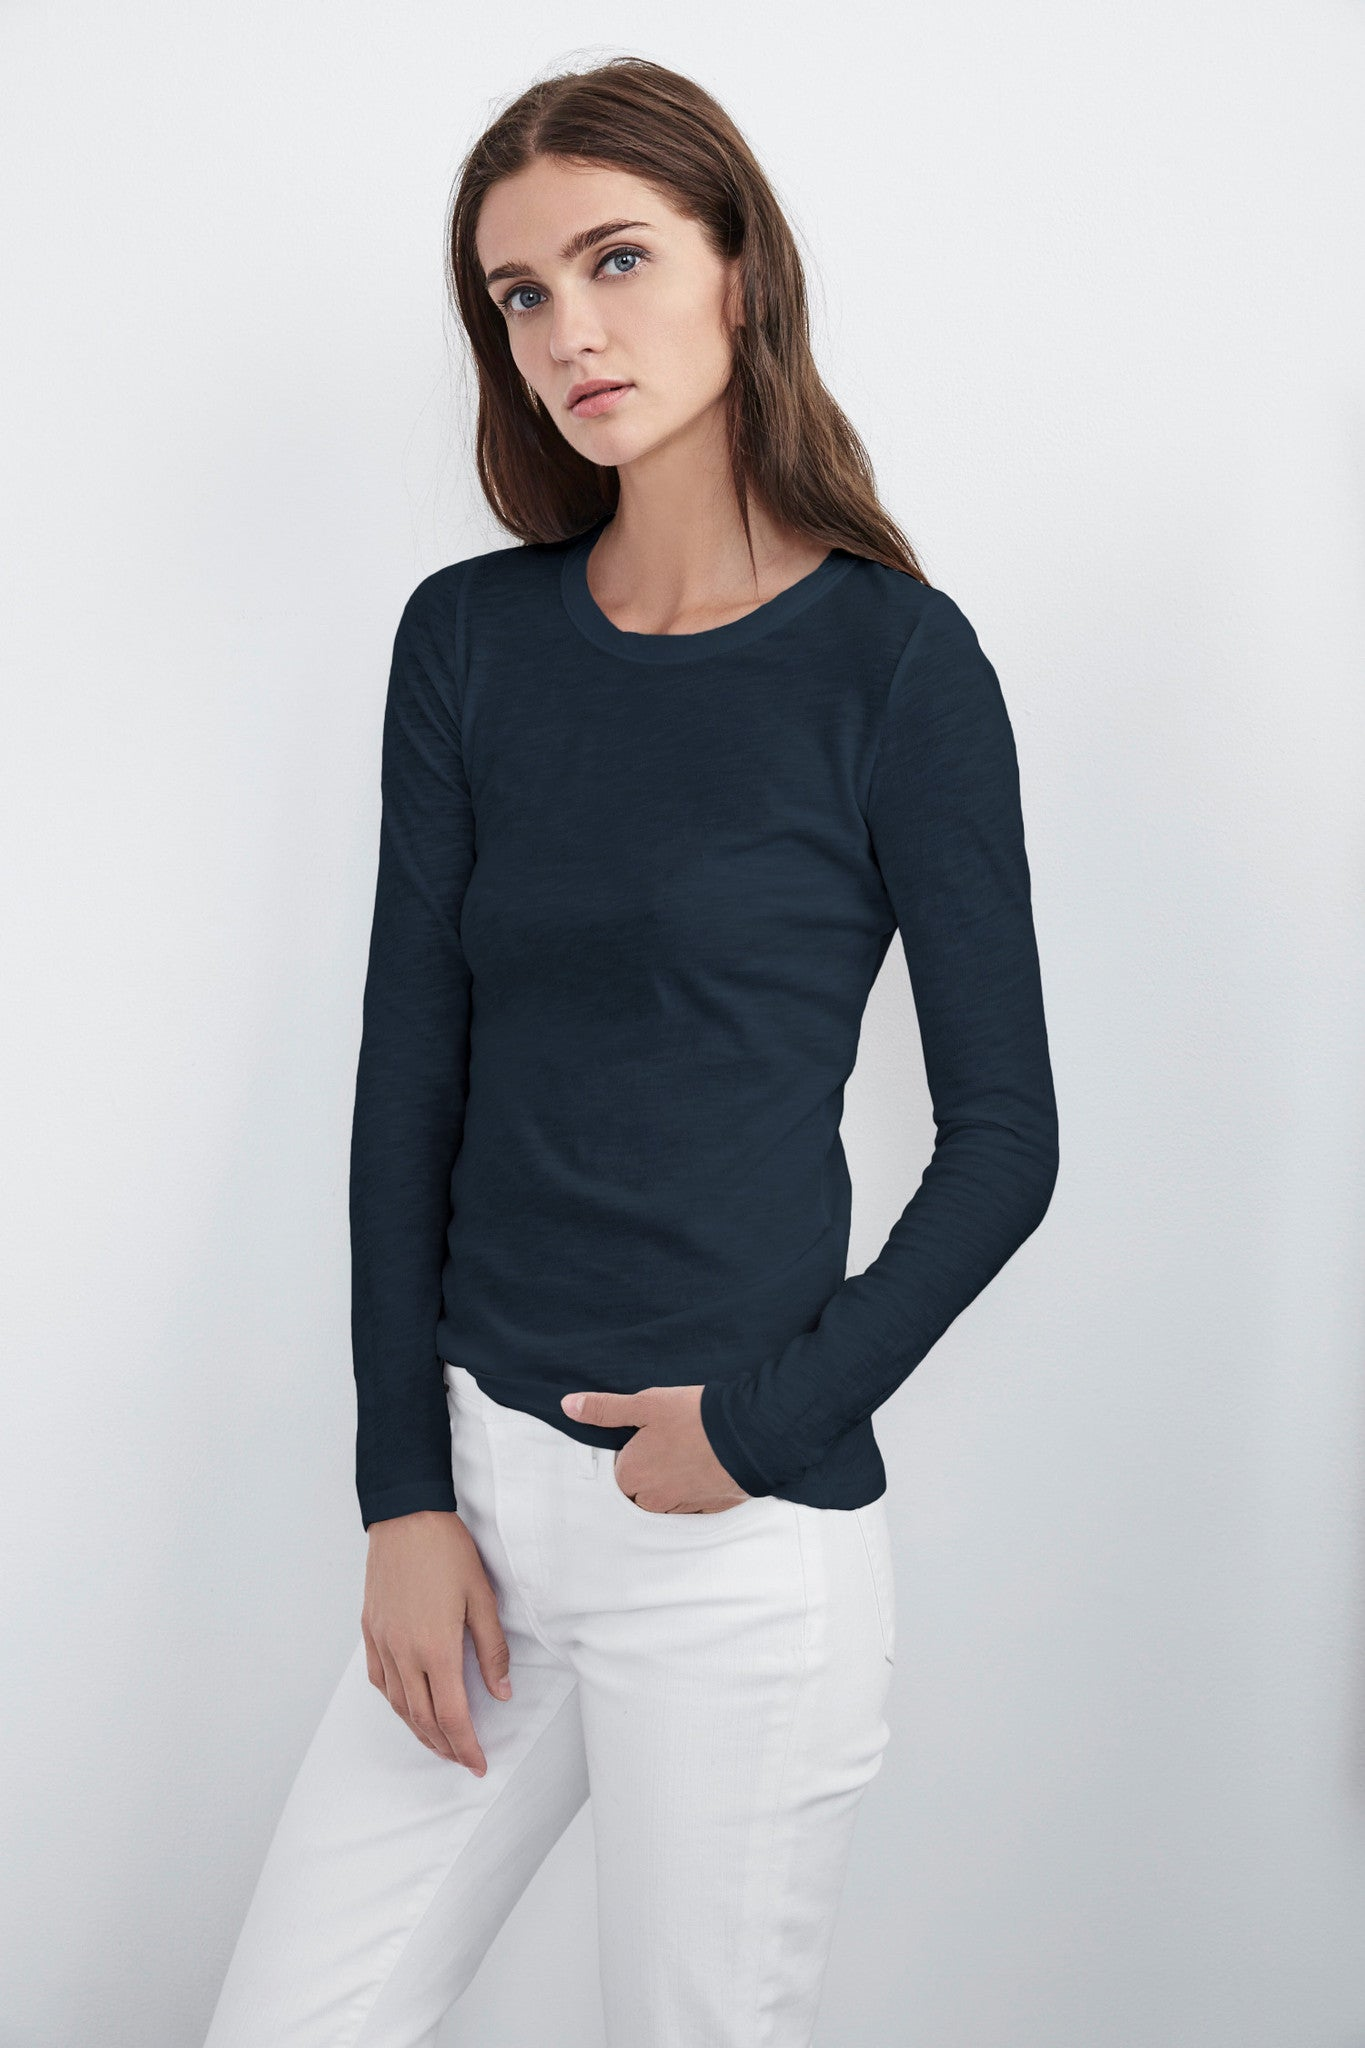 LIZZIE ORIGINAL SLUB LONG SLEEVE TEE IN CASTLE